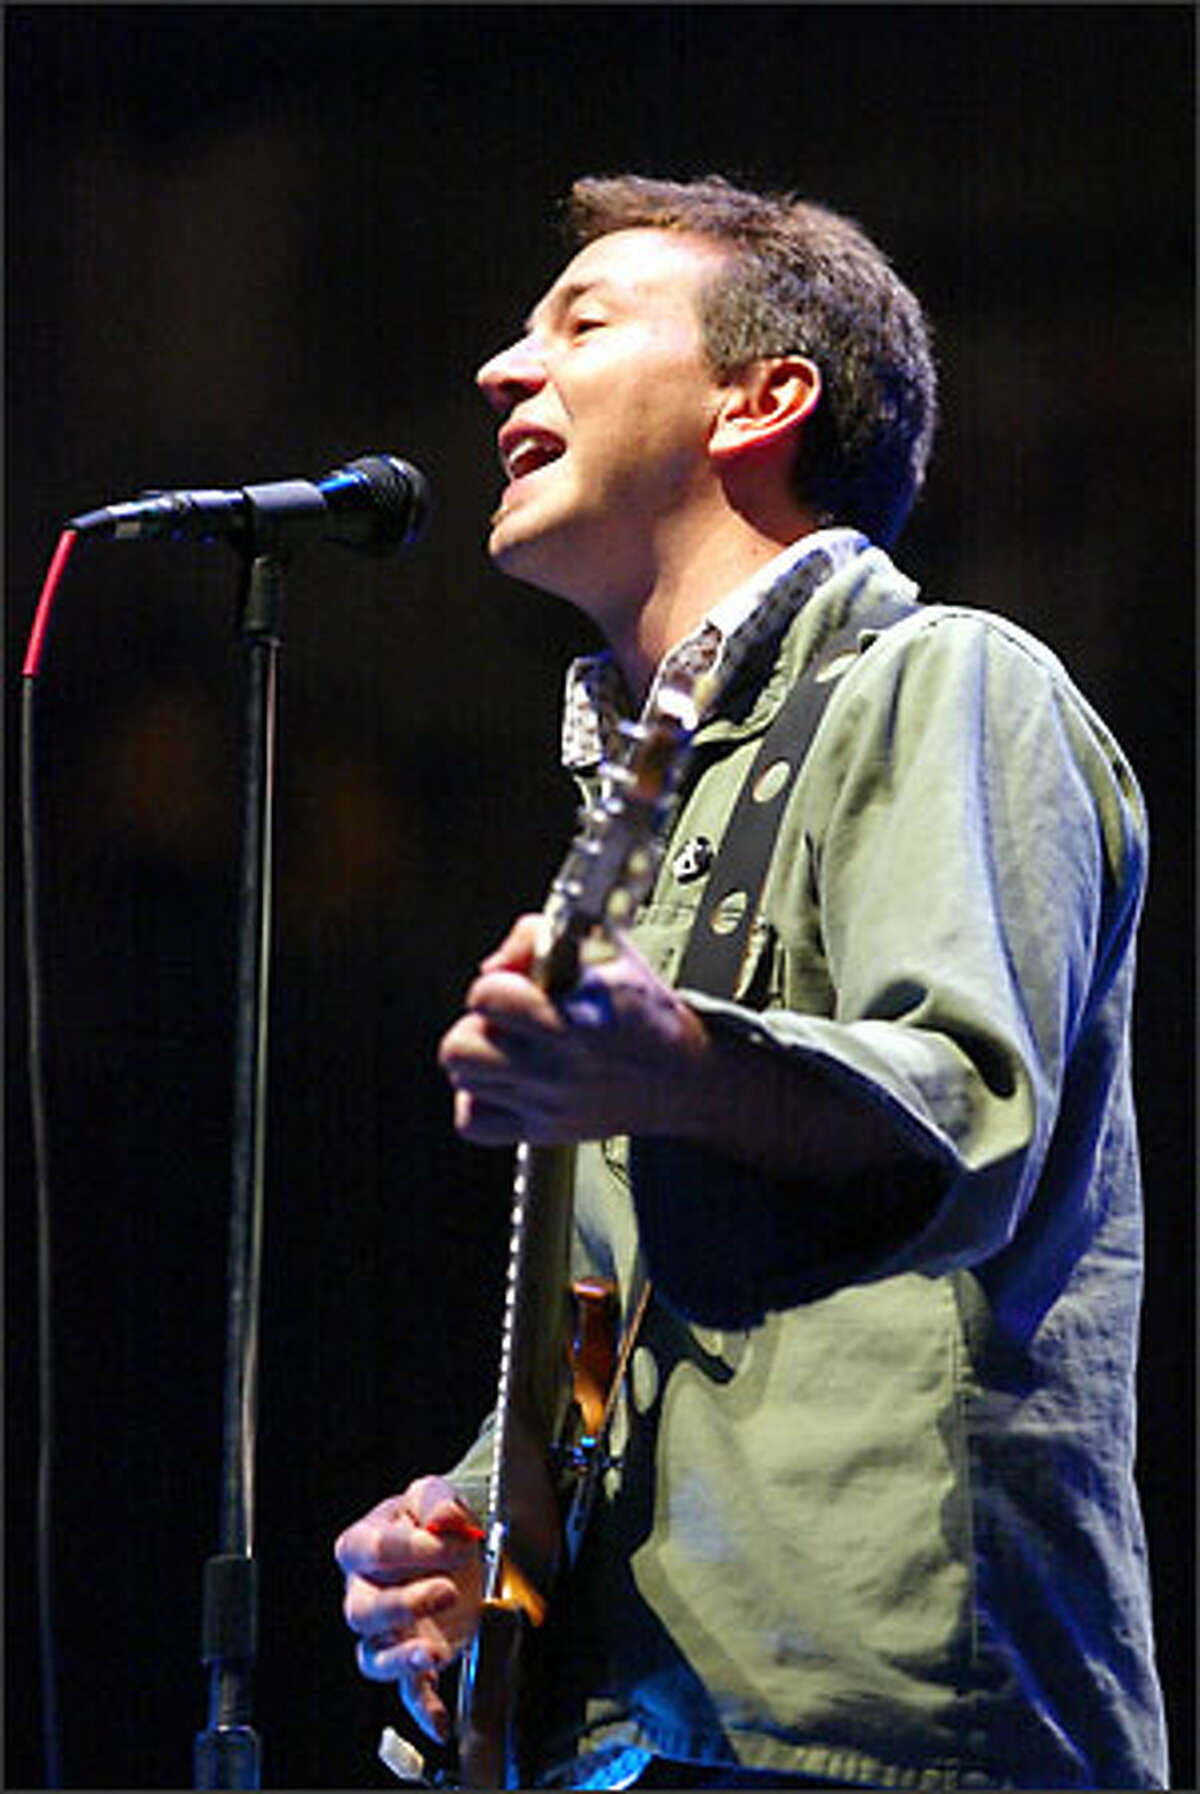 Pearl Jam lead singer Eddie Vedder opens the first of two sold-out shows at Key Arena. The shows benefit a diverse group of local and national non-profits. The band expects to raise $400,000. Since 1993 Pearl Jam has raised more than $1.2 million for non-profits through benefit concerts.